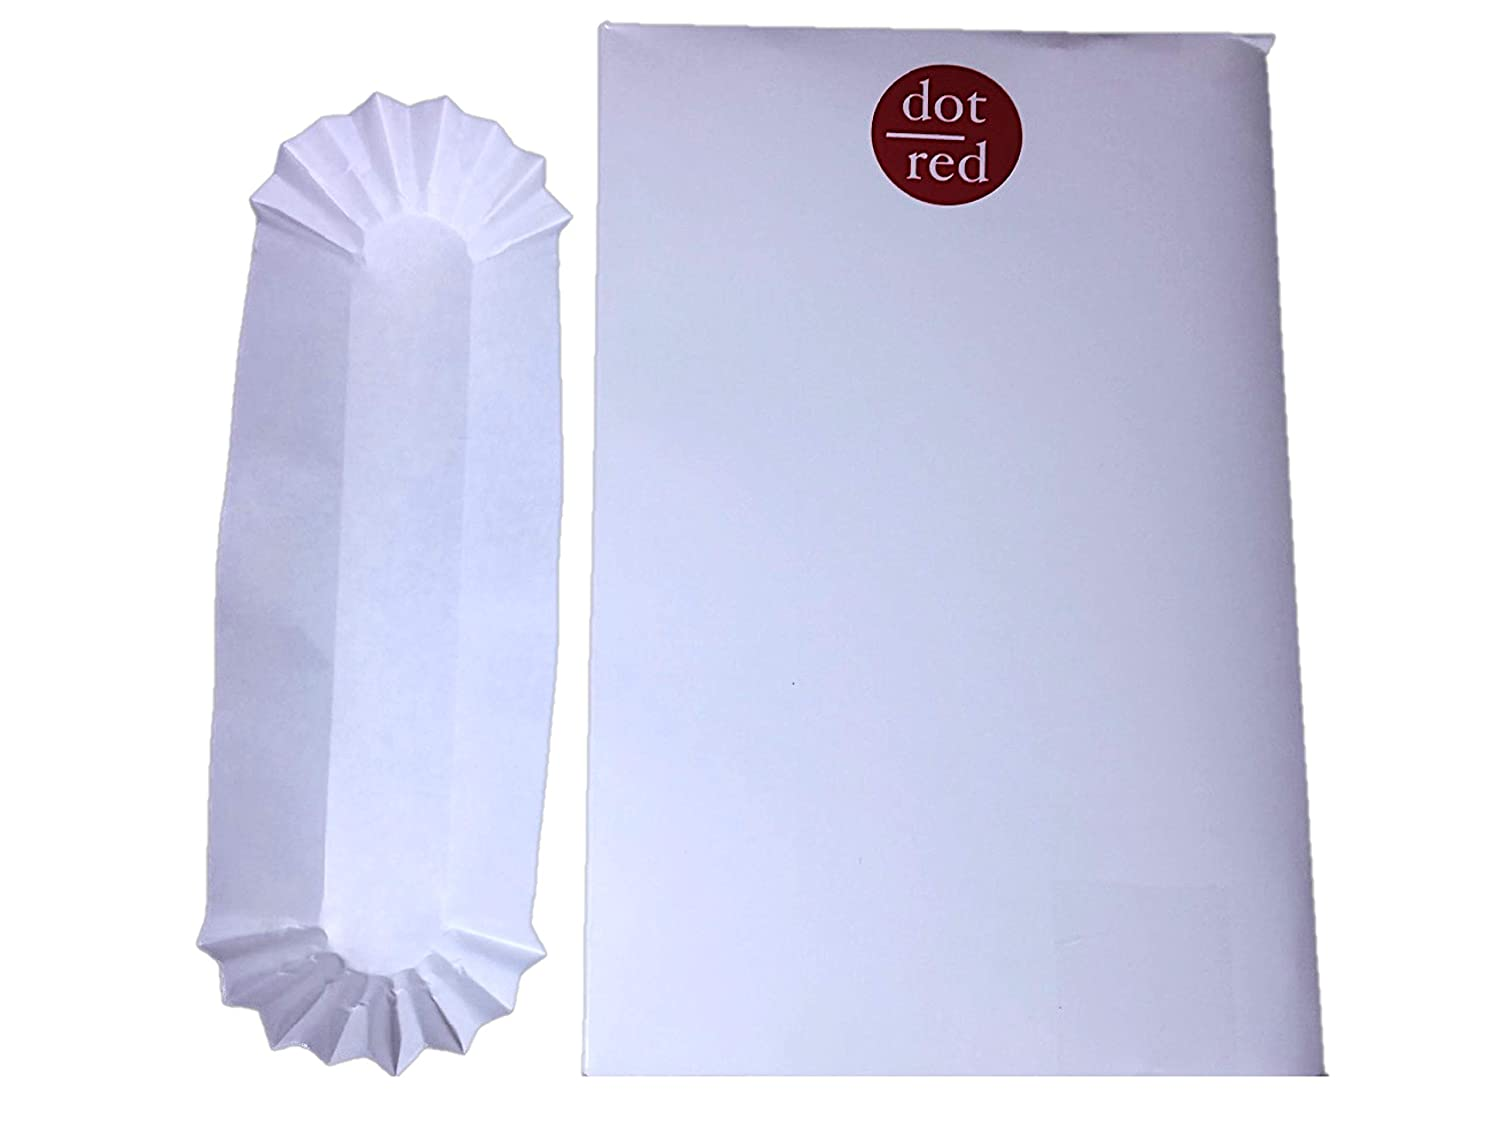 250ctFootlong Jumbo Fluted Hot Dog Tray Reinforced Disposable Paper Dot Red